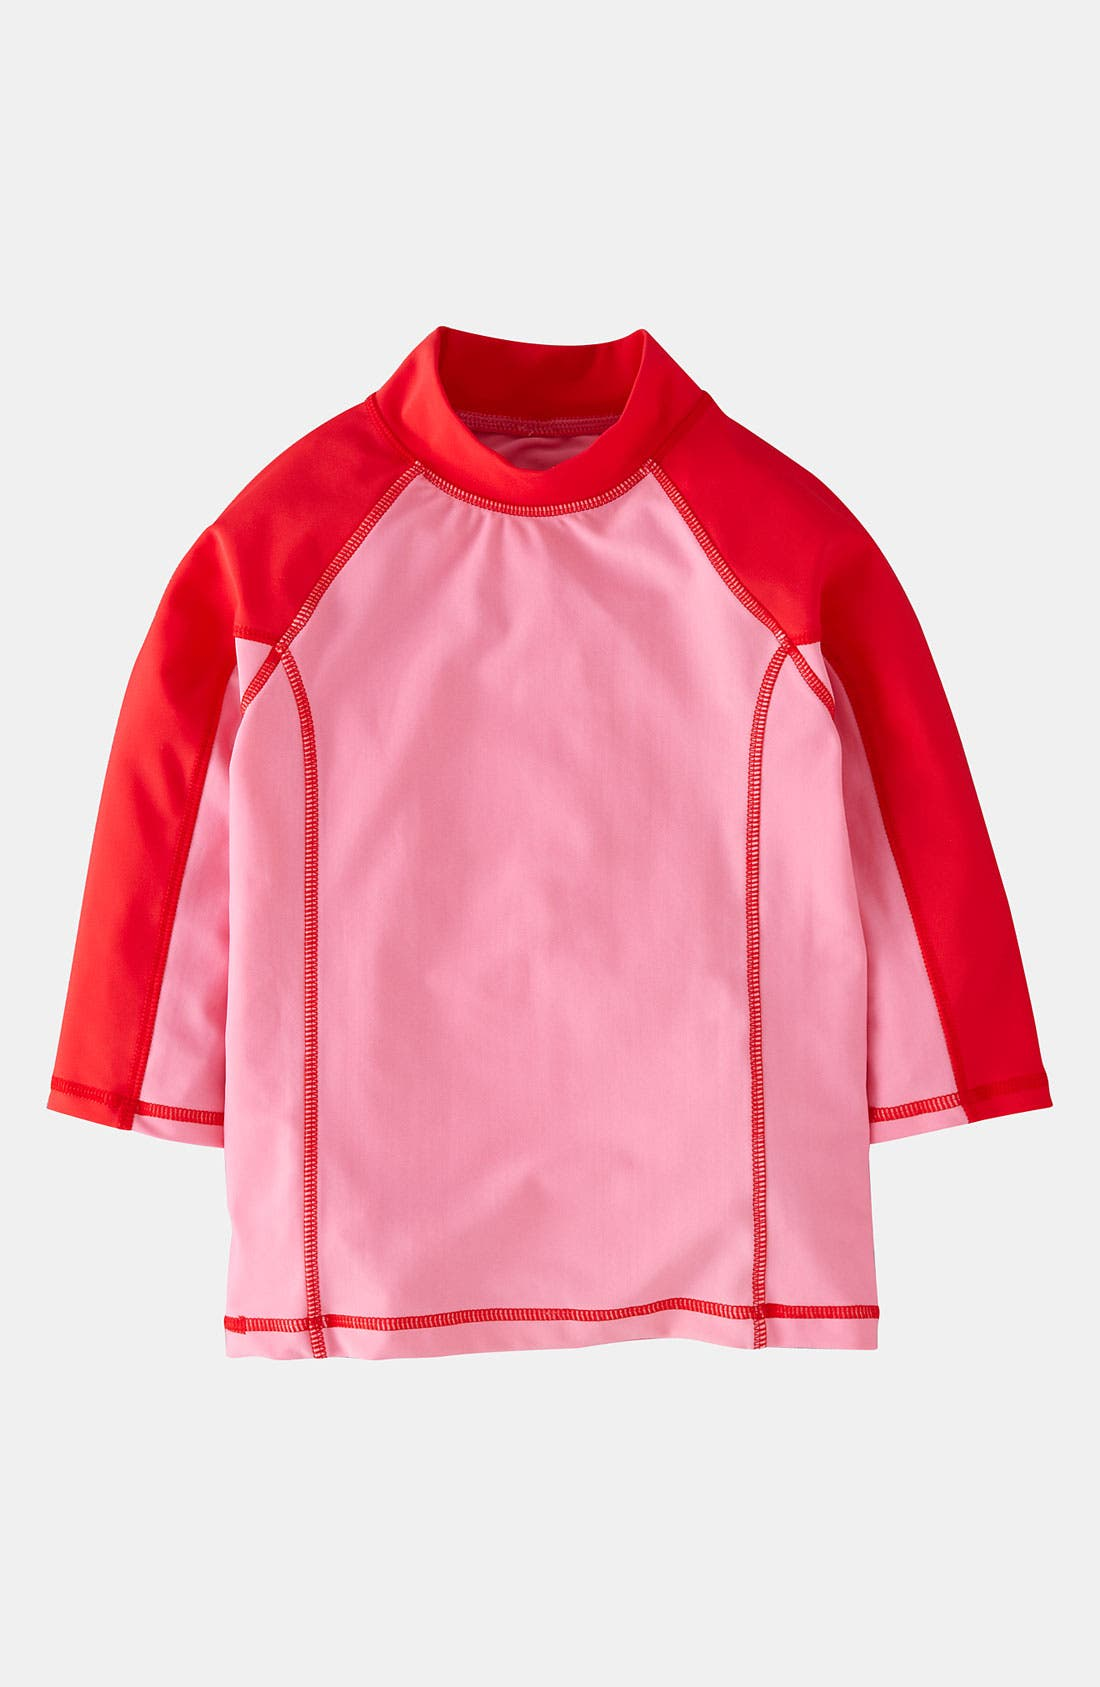 Main Image - Mini Boden Rashguard (Toddler)